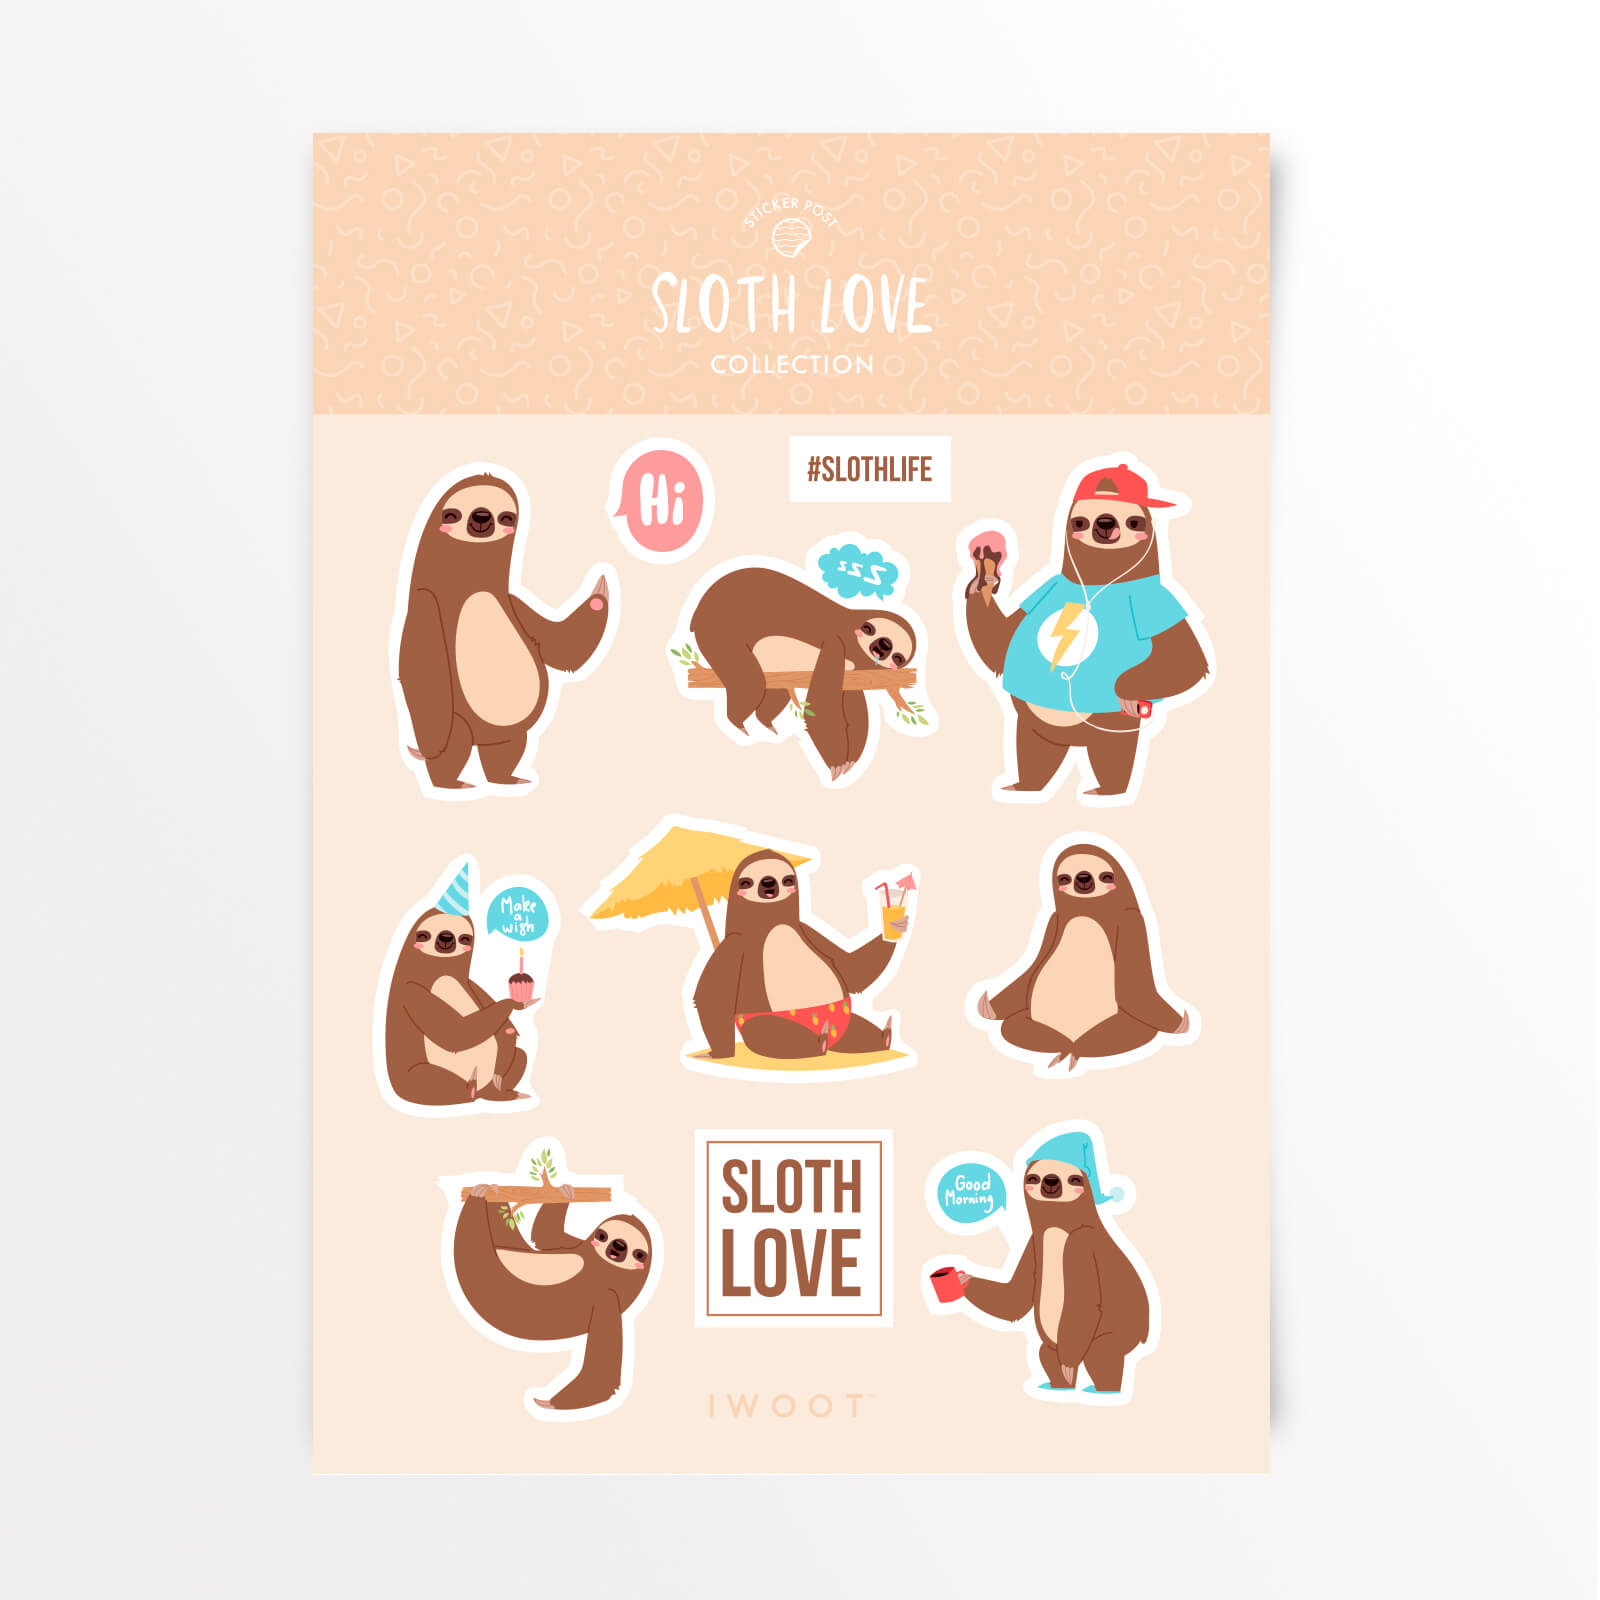 Sloth love sticker pack iwoot